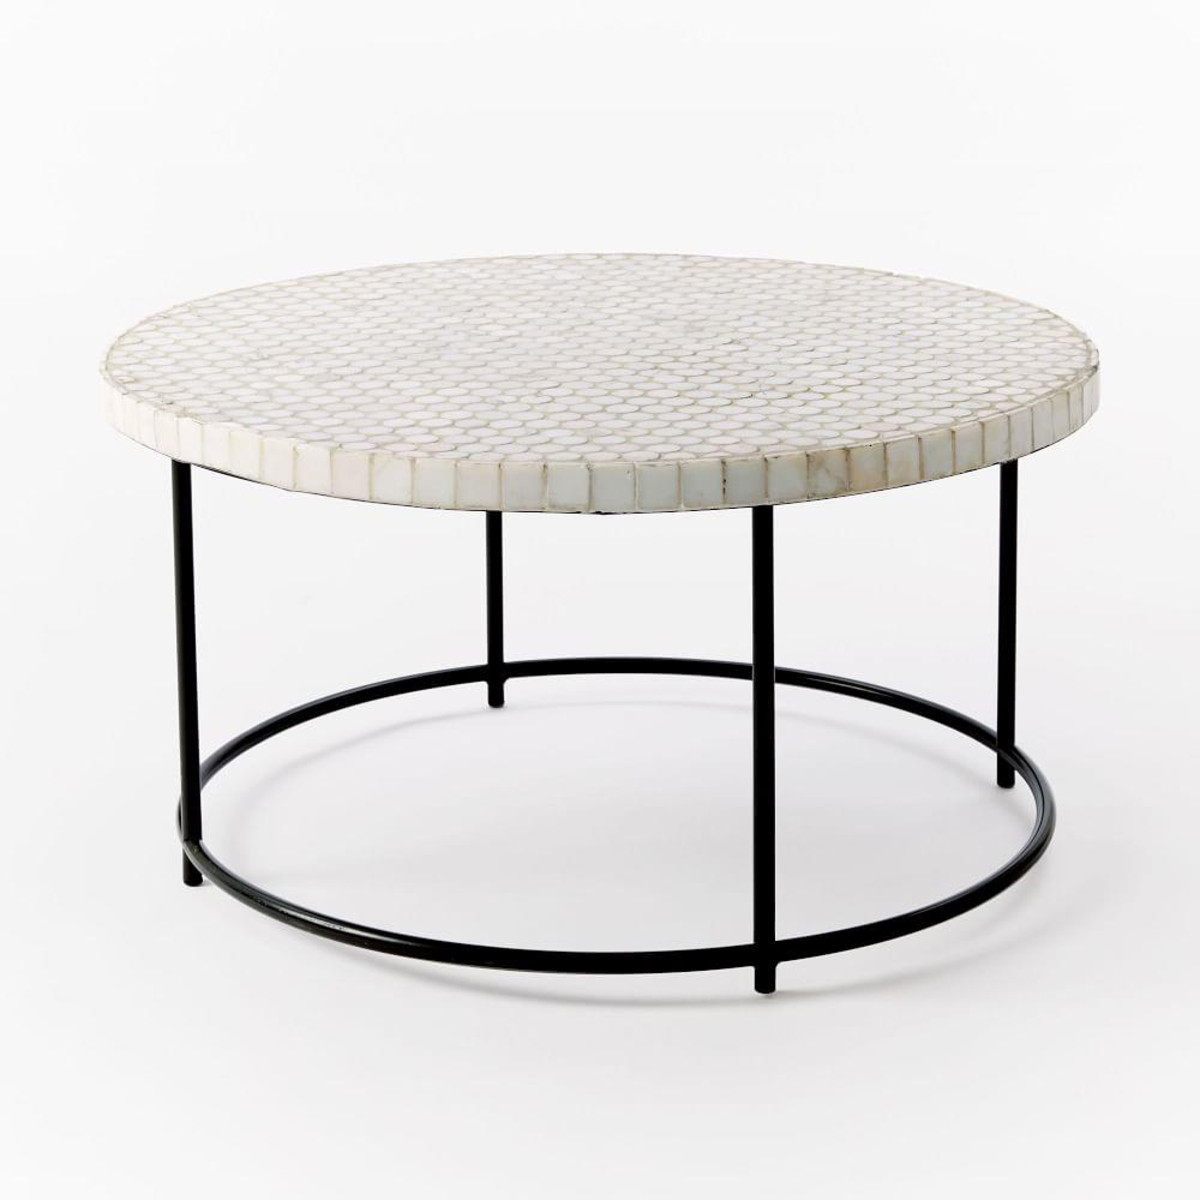 mosaic tiled outdoor coffee table white marble antique bronze media side turquoise end kirklands bar stools rattan drinks furniture website design square patio threshold wood and